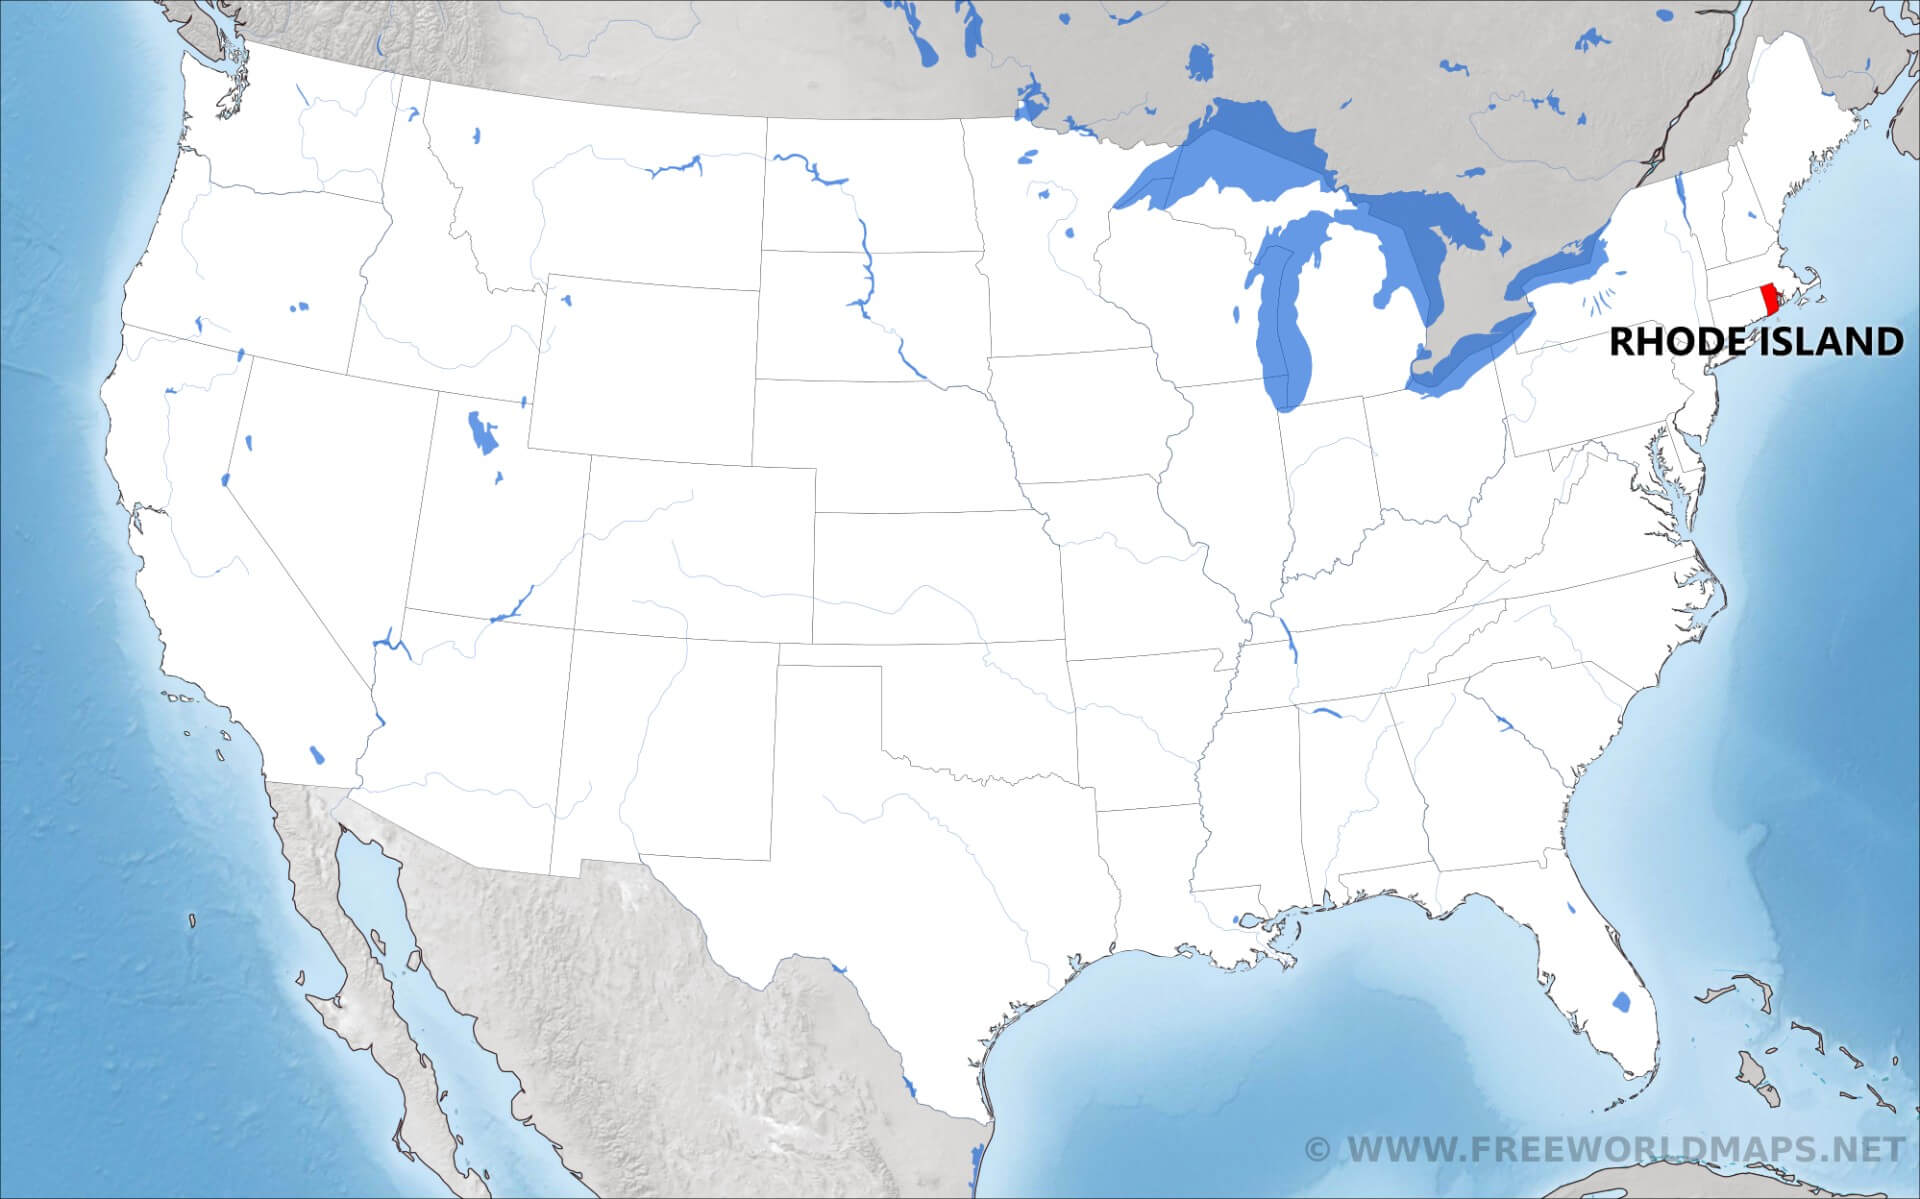 Where is Rhode Island located on the map